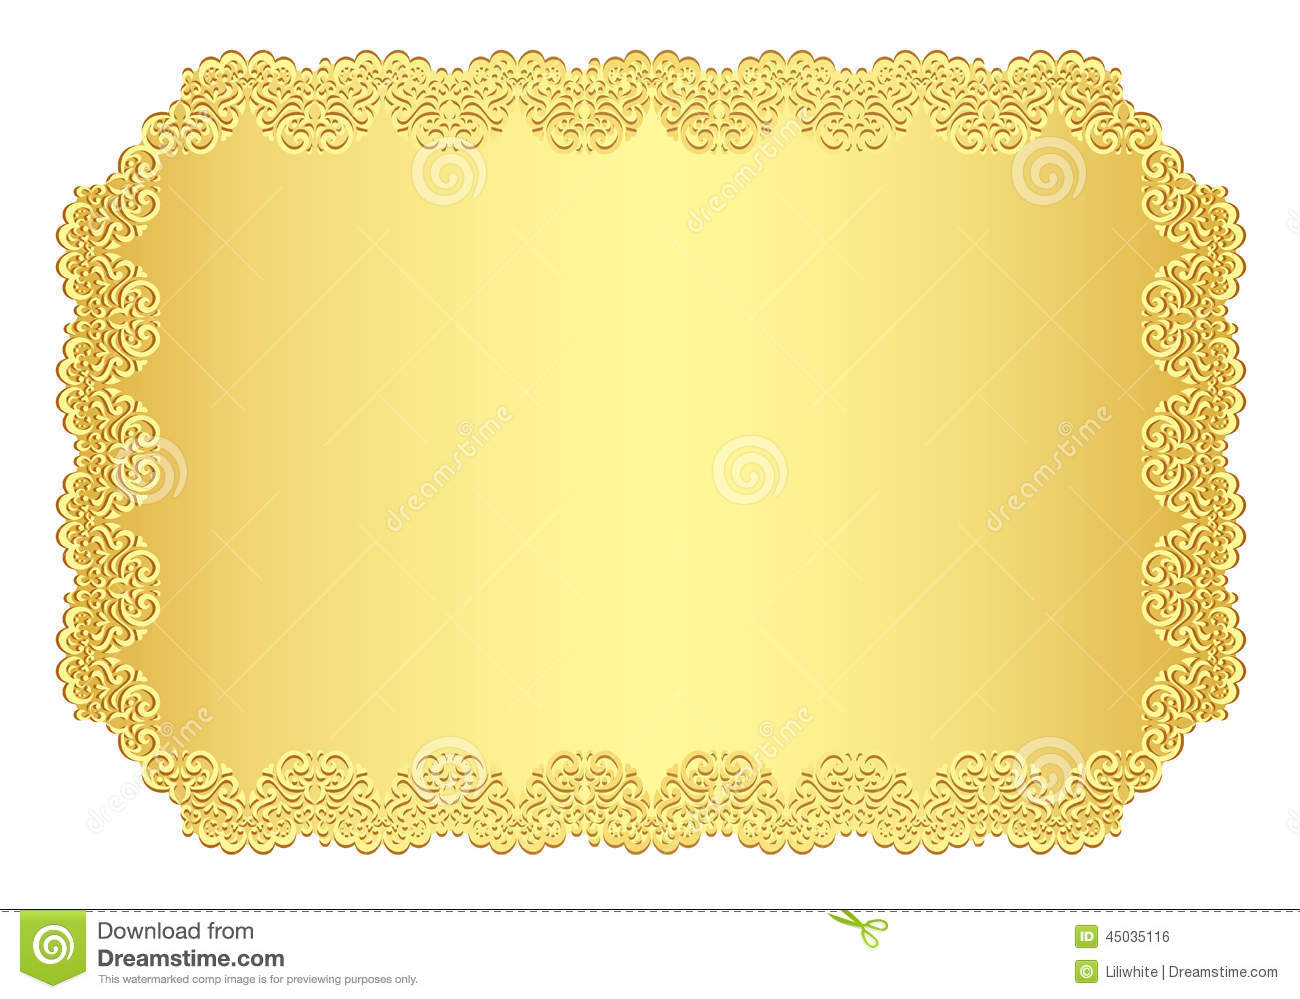 Willy Wonka Golden Ticket Invitation Template is Cool Style To Create Cool Invitations Ideas